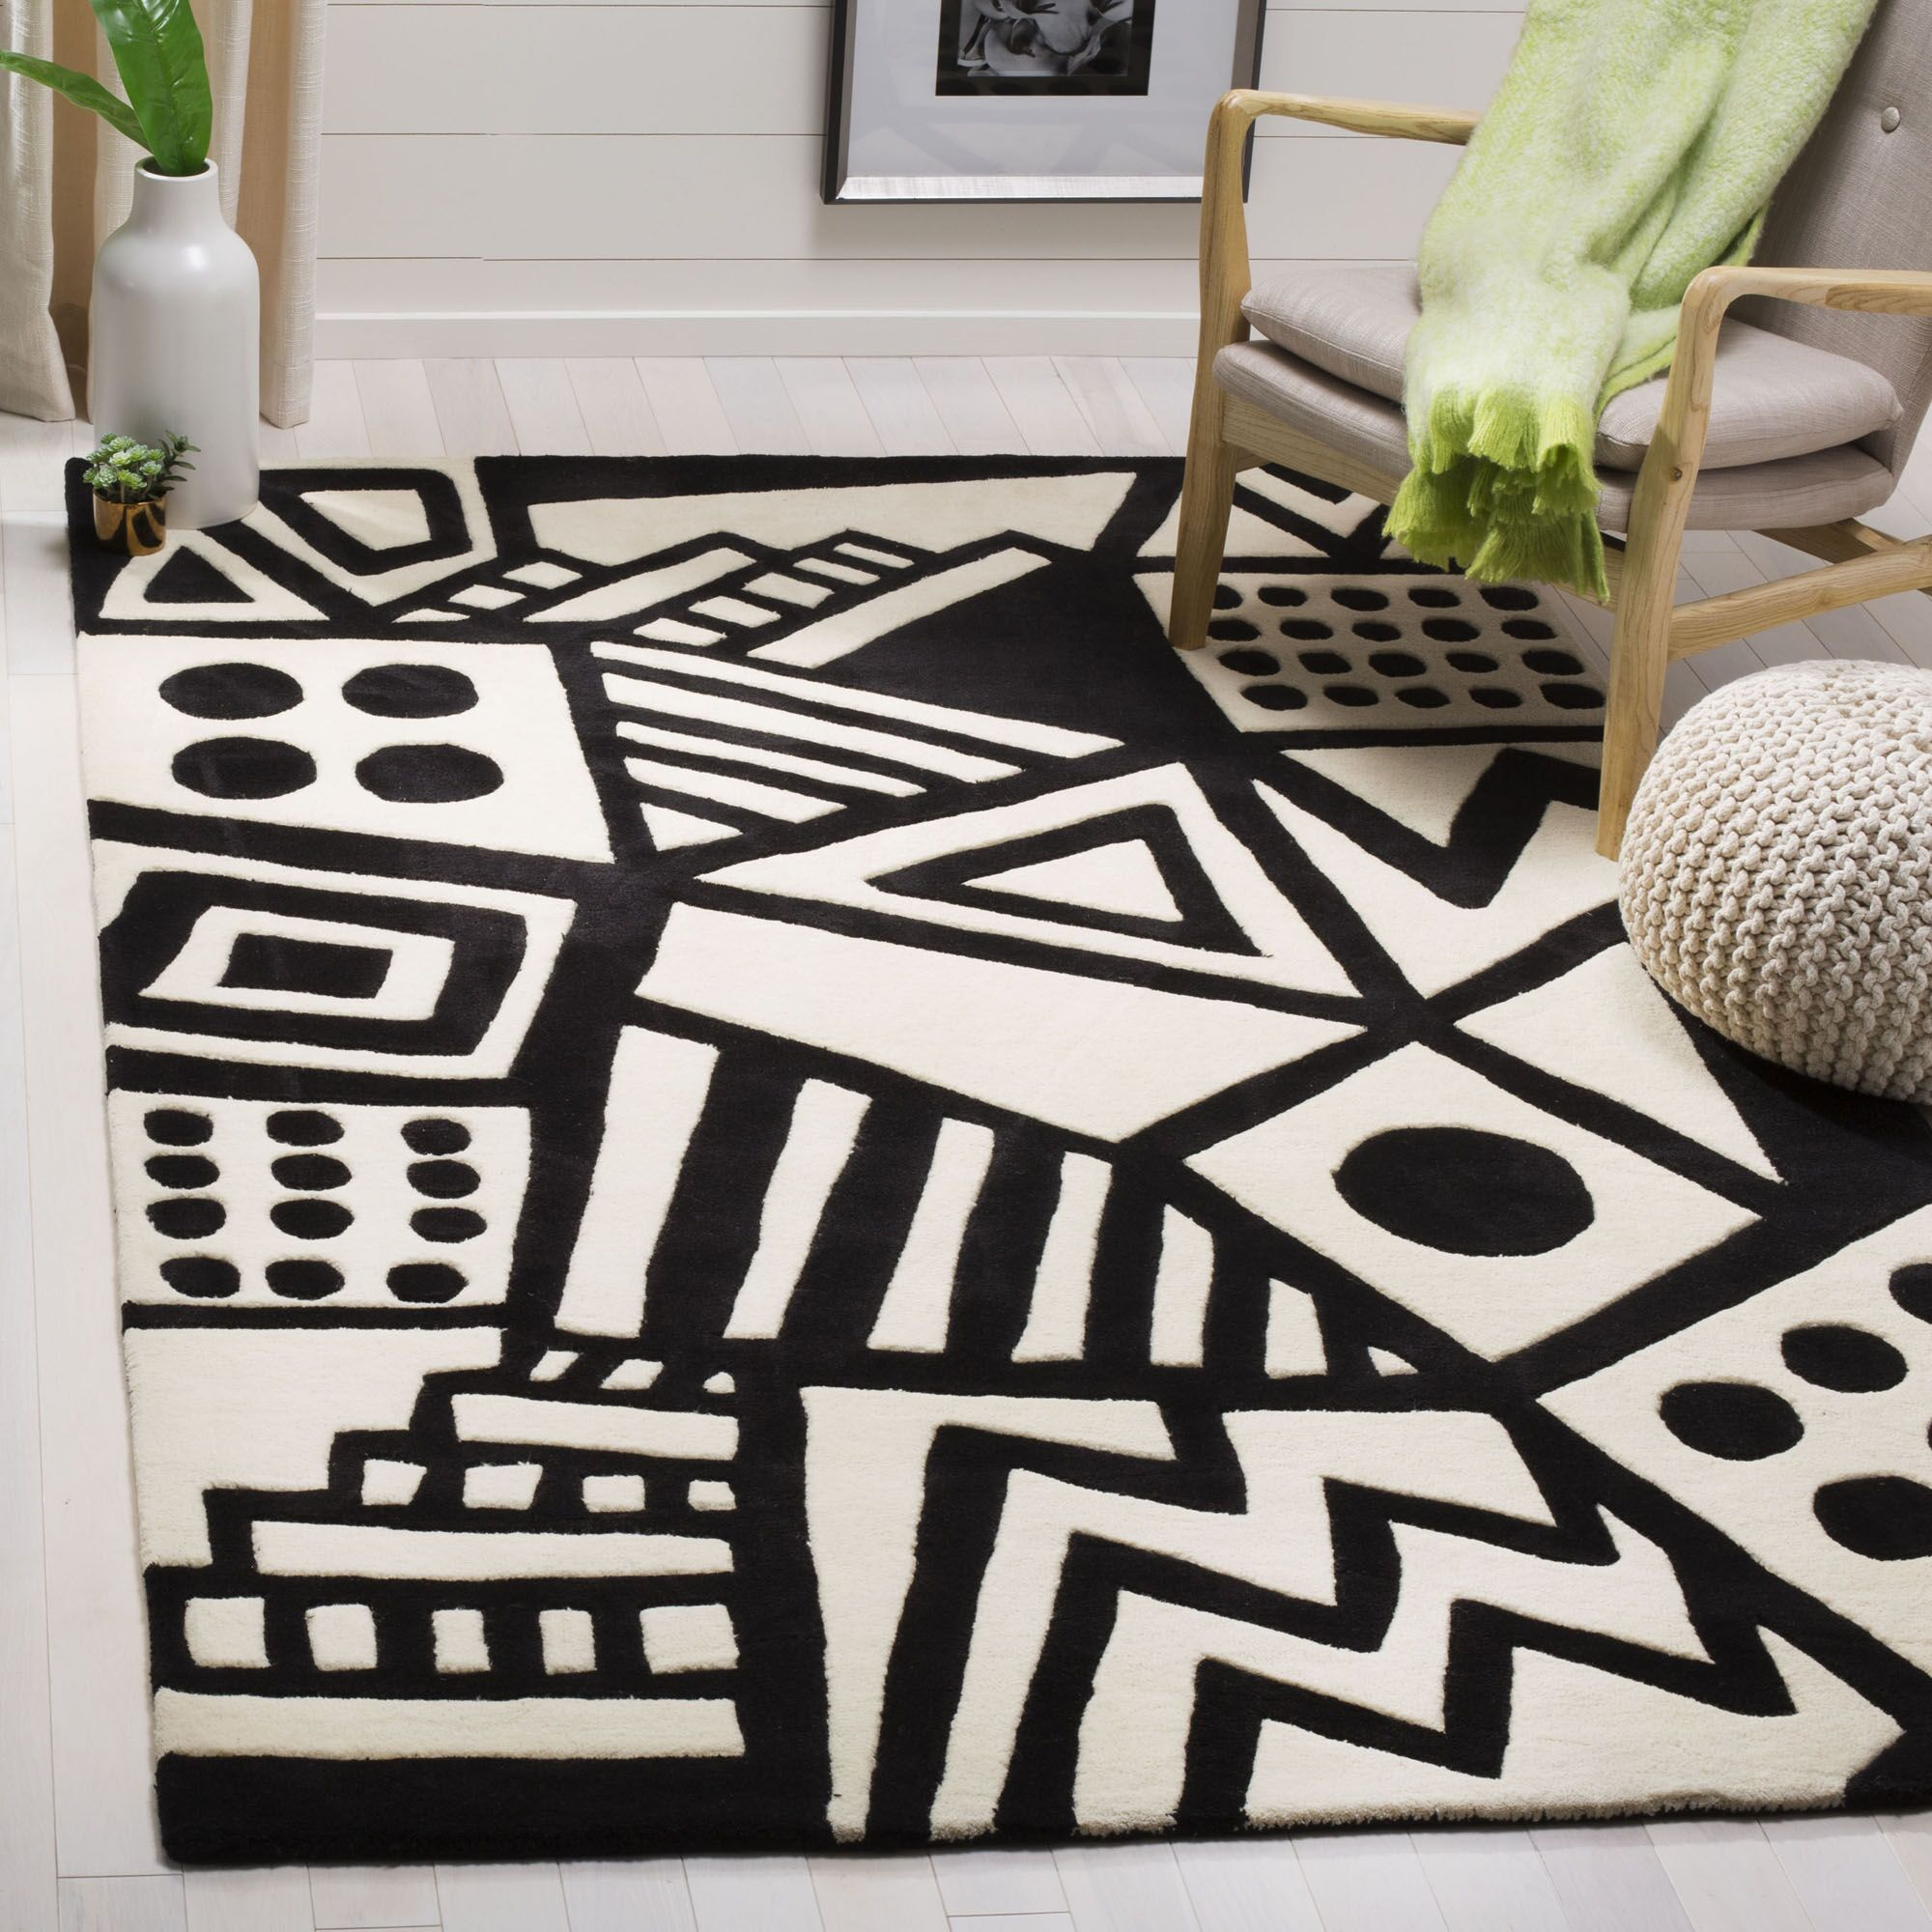 Hardin Hand Tufted Wool Ivory/Black Area Rug Rug Size: Rectangle 8' x 10'